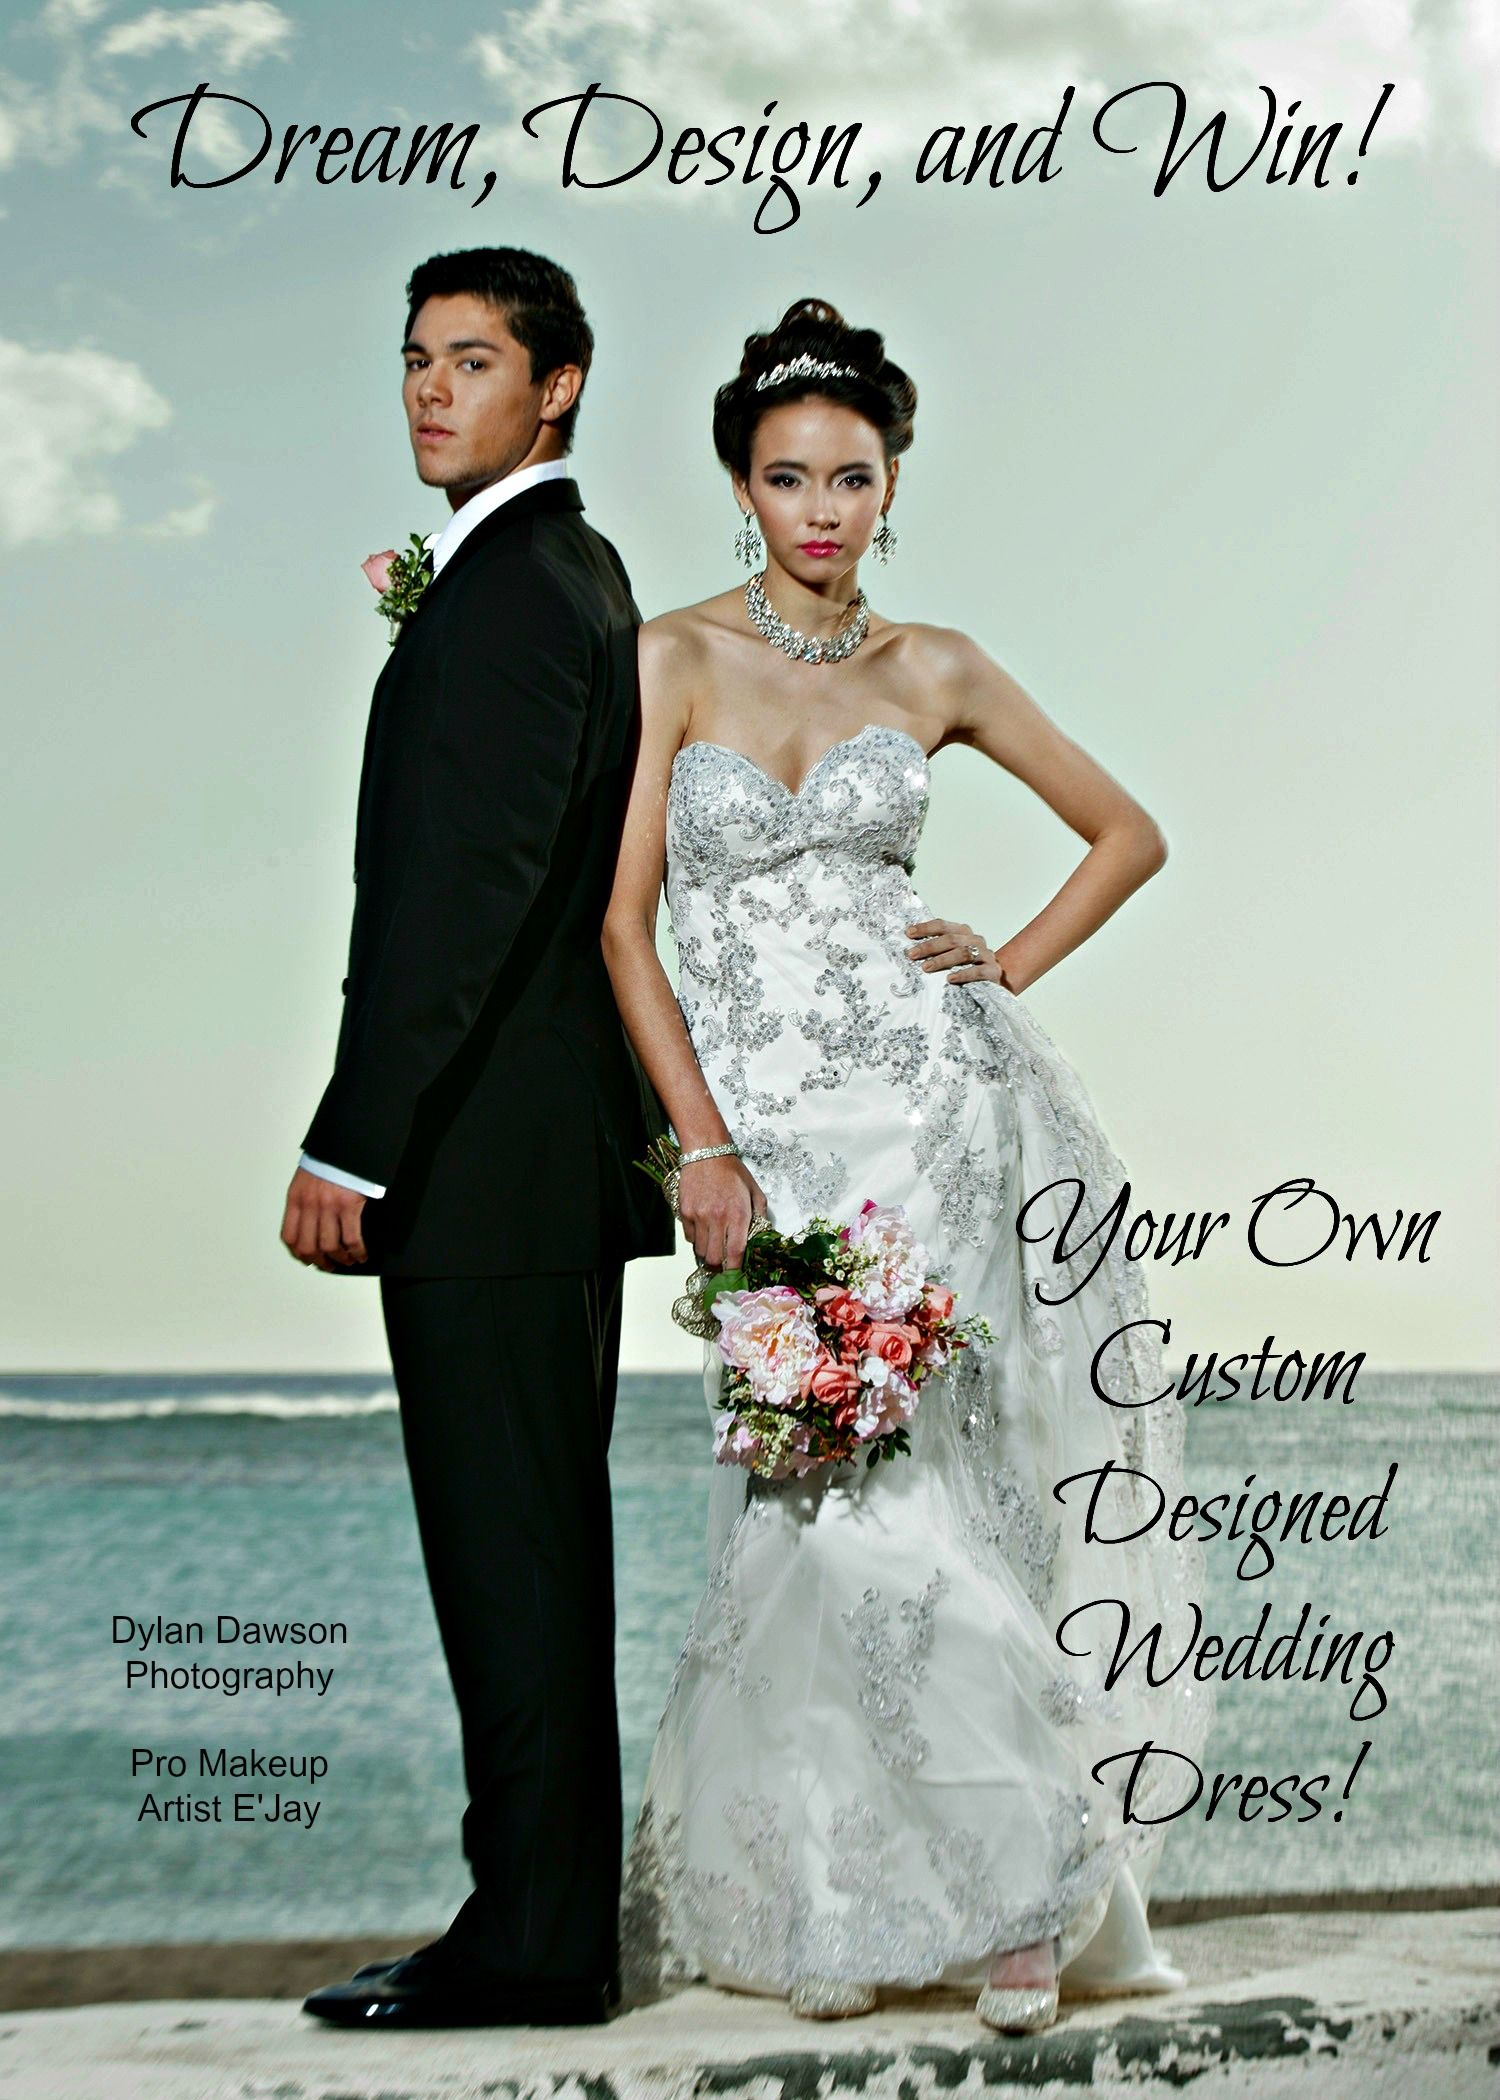 Design your own wedding dress and get it produced for free